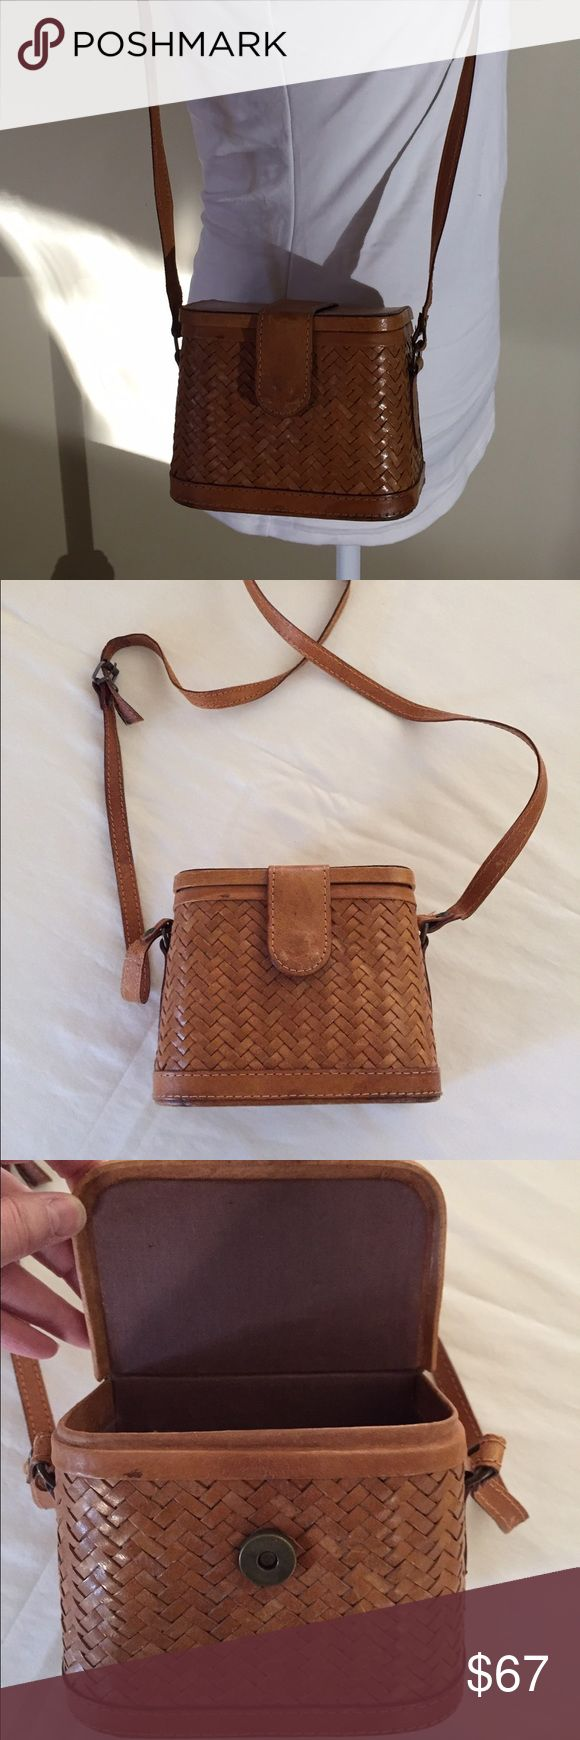 """REALLY CUTE Brown Leather Crossbody Bag This is a very interesting find!!  I purchased an antique fishing tackle box and cleaned it up to wear as a purse!  It is 5""""H x 6""""W x 3.5""""D and has an adjustable 21"""" drop shoulder strap.  Open the magnetic closure lid and you'll find a cloth interior with one slip pocket.  MAKE ME AN OFFER! Bags"""